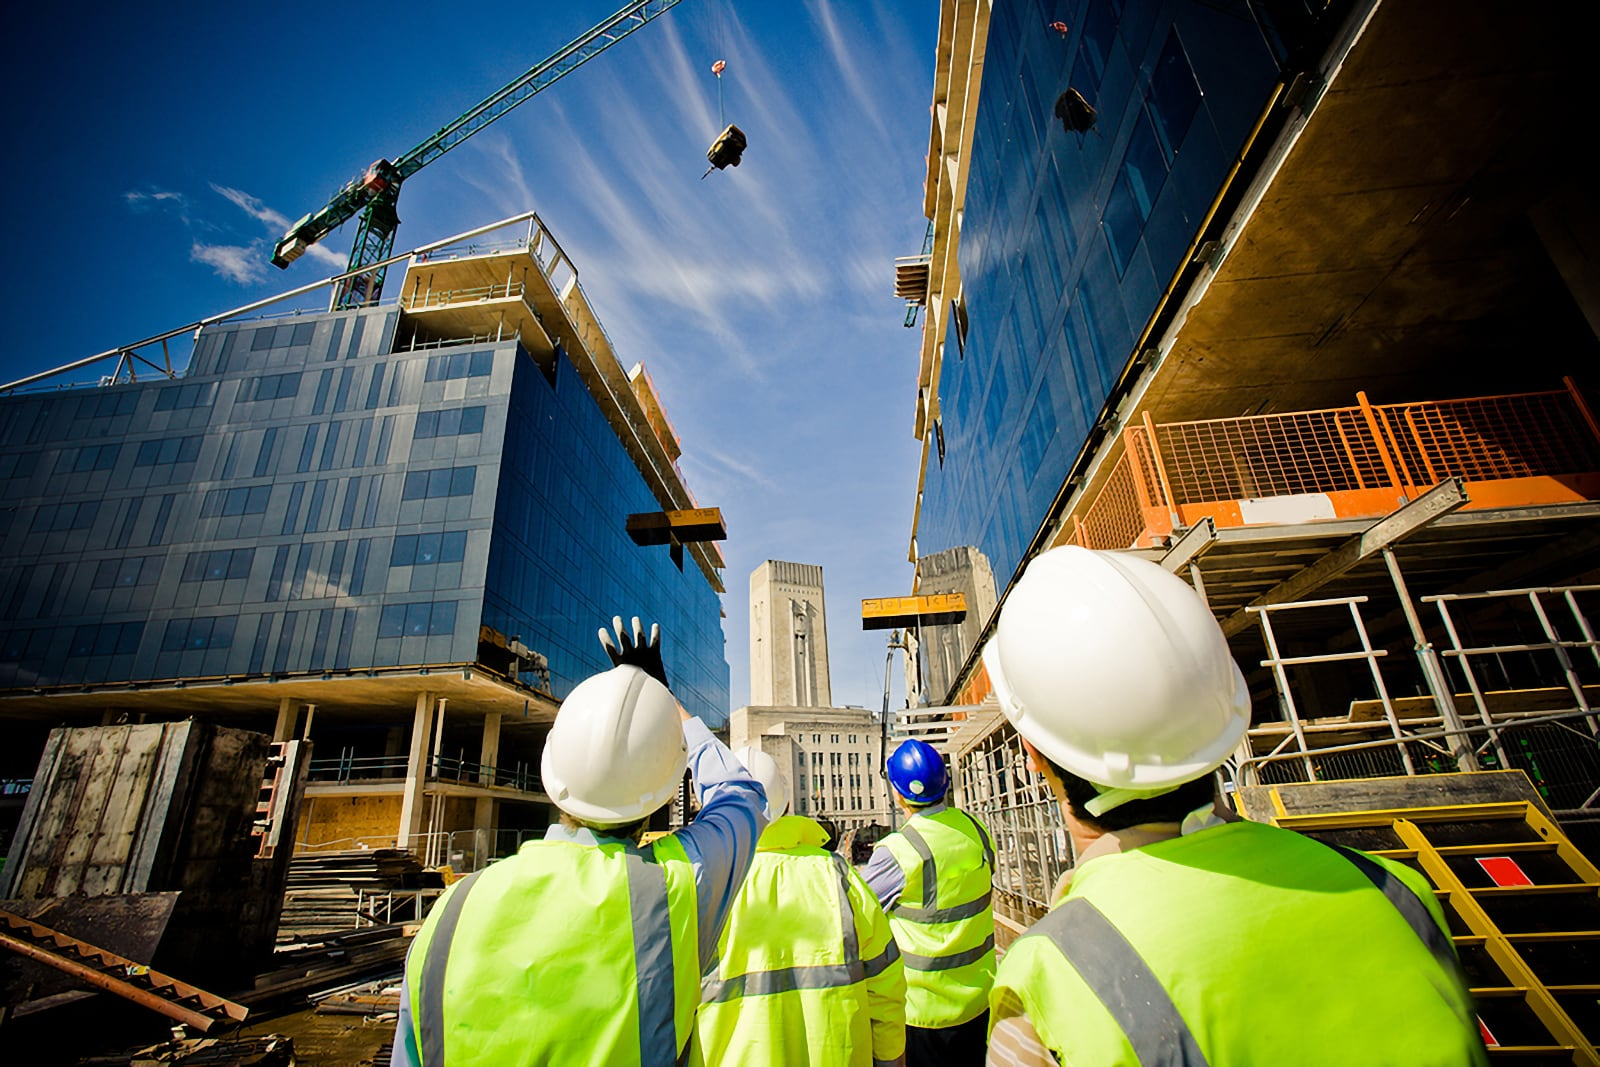 Photo of UK building site with high rise cranes moving goods, and workers with hard hat protection evaluating progress